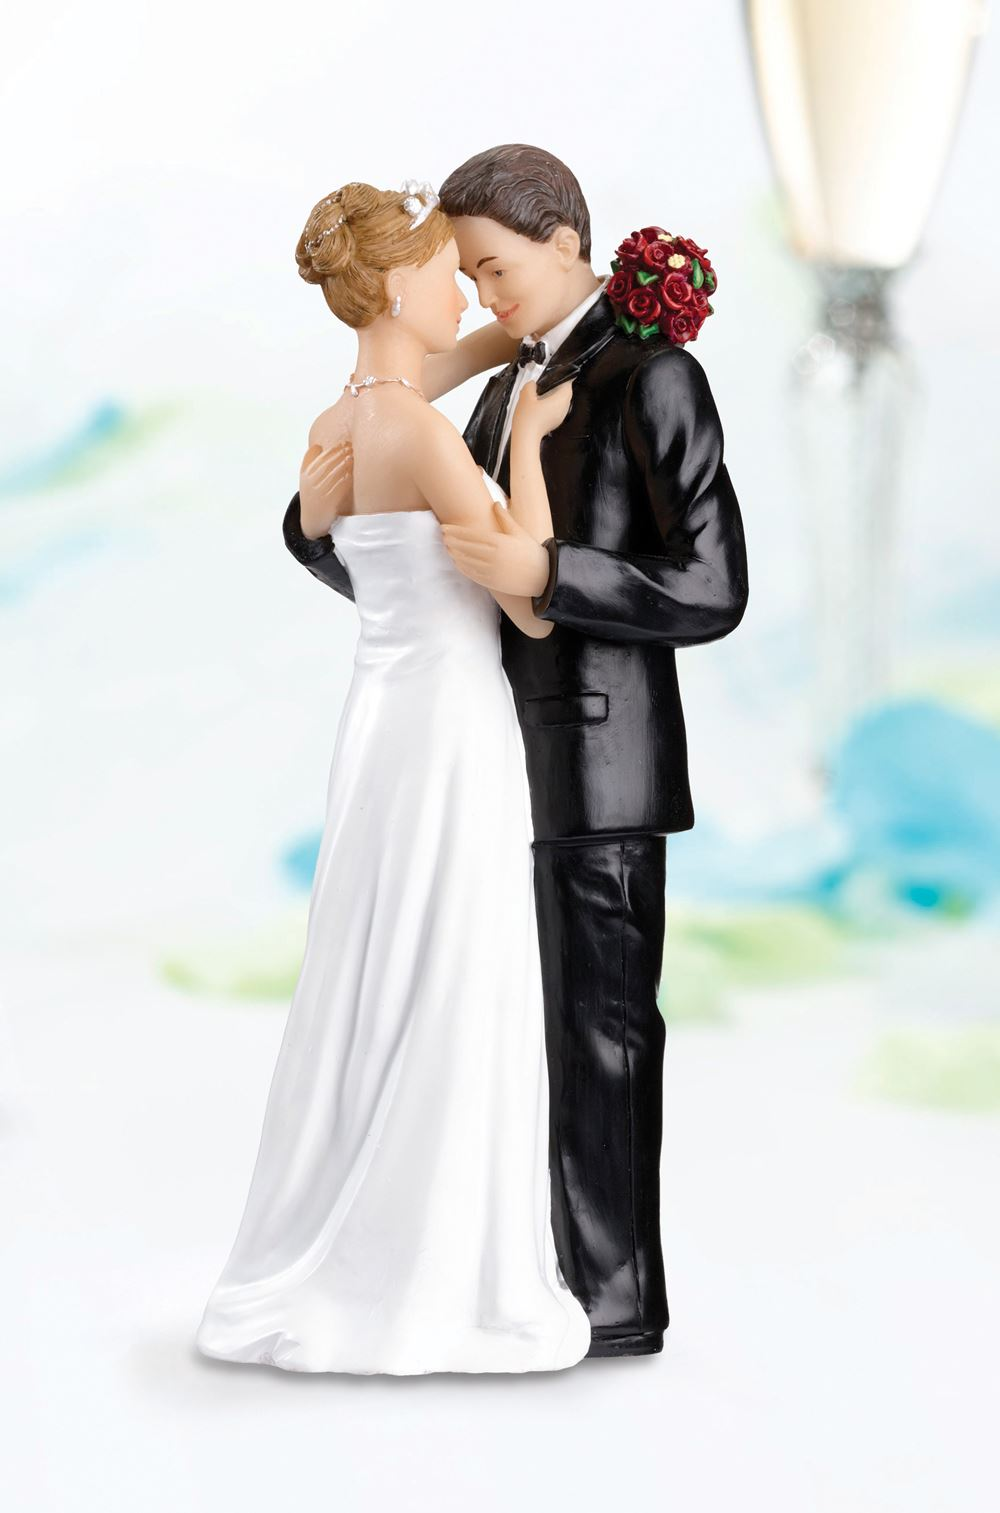 Amazon Bride And Groom Cake Toppers